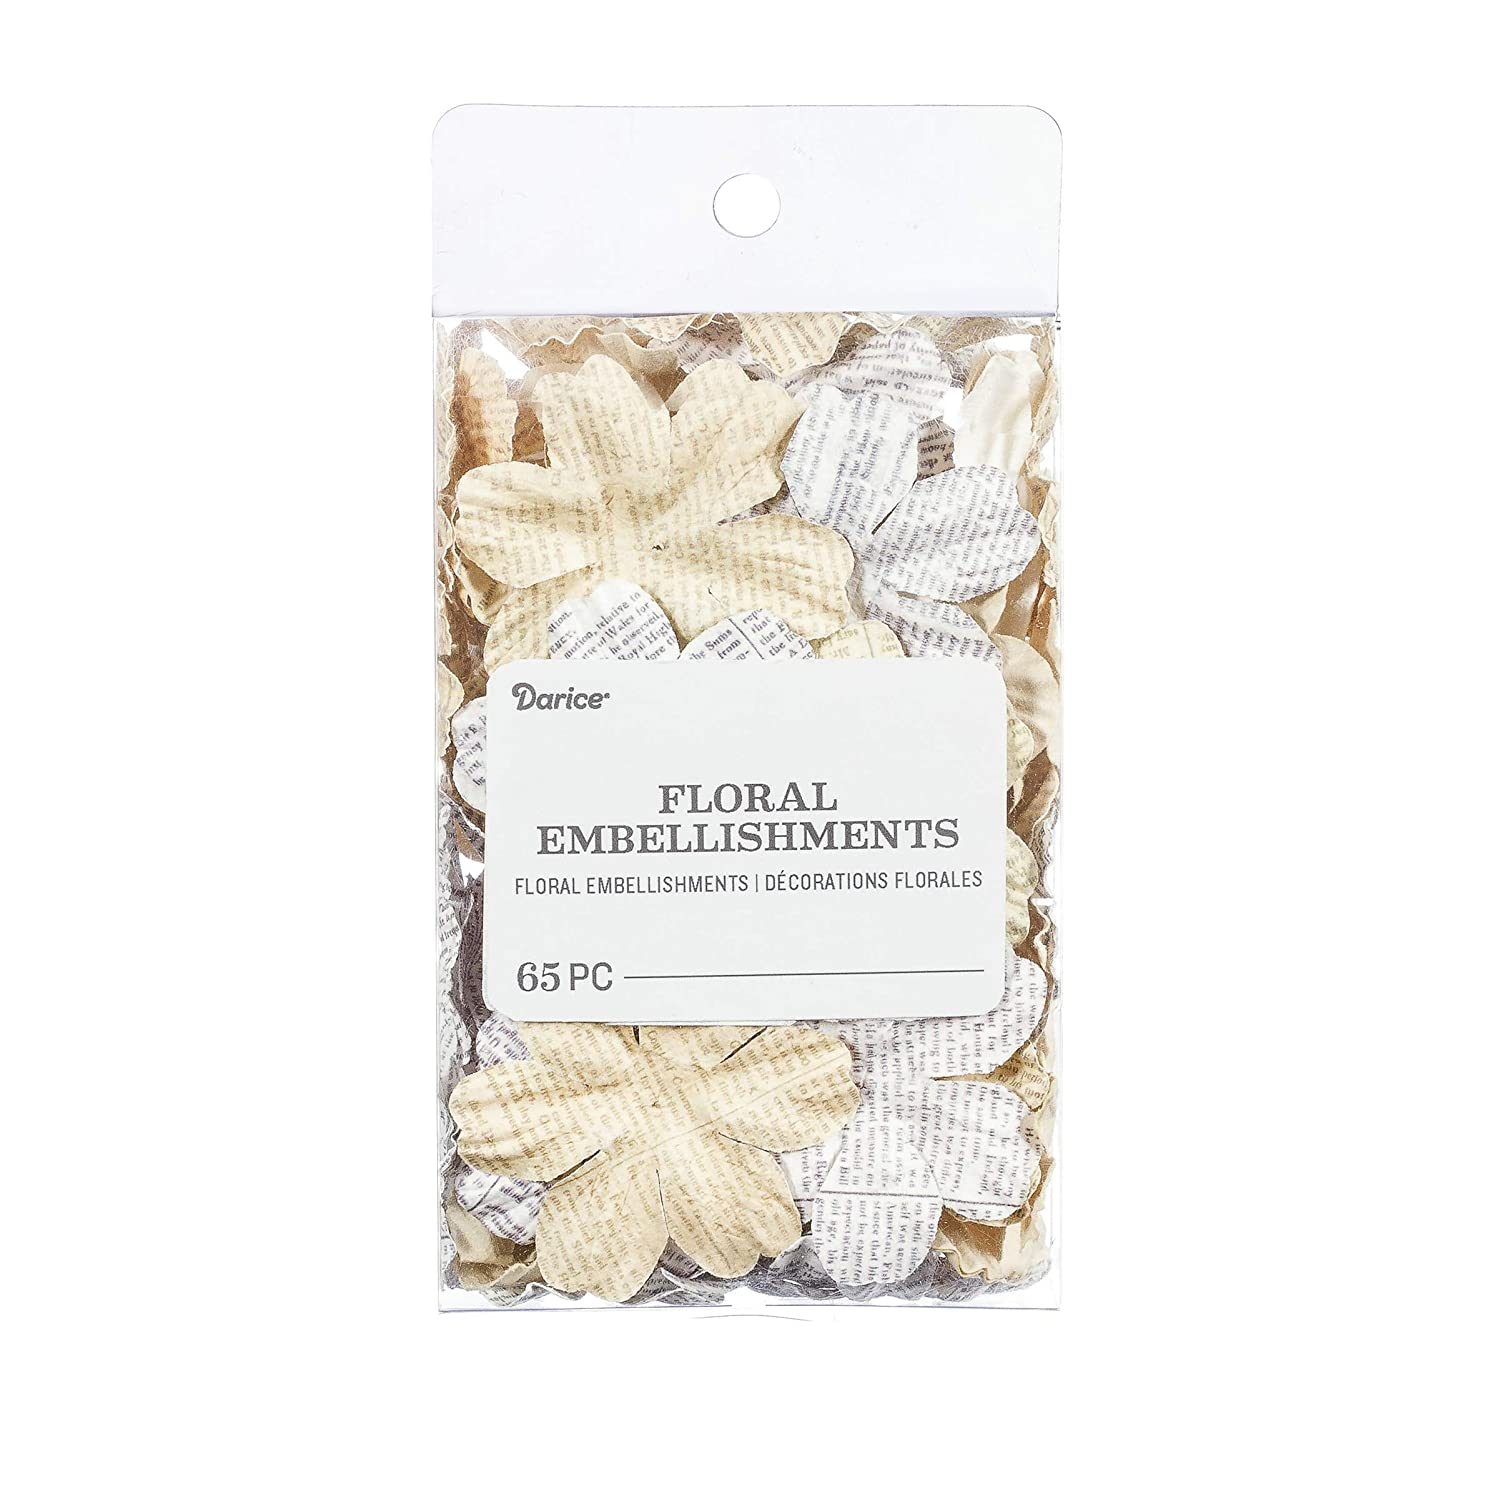 Darice 30061981 Newspaper Floral Embellishments: White/Ivory, 1.75 in, 65 Pack, Assorted